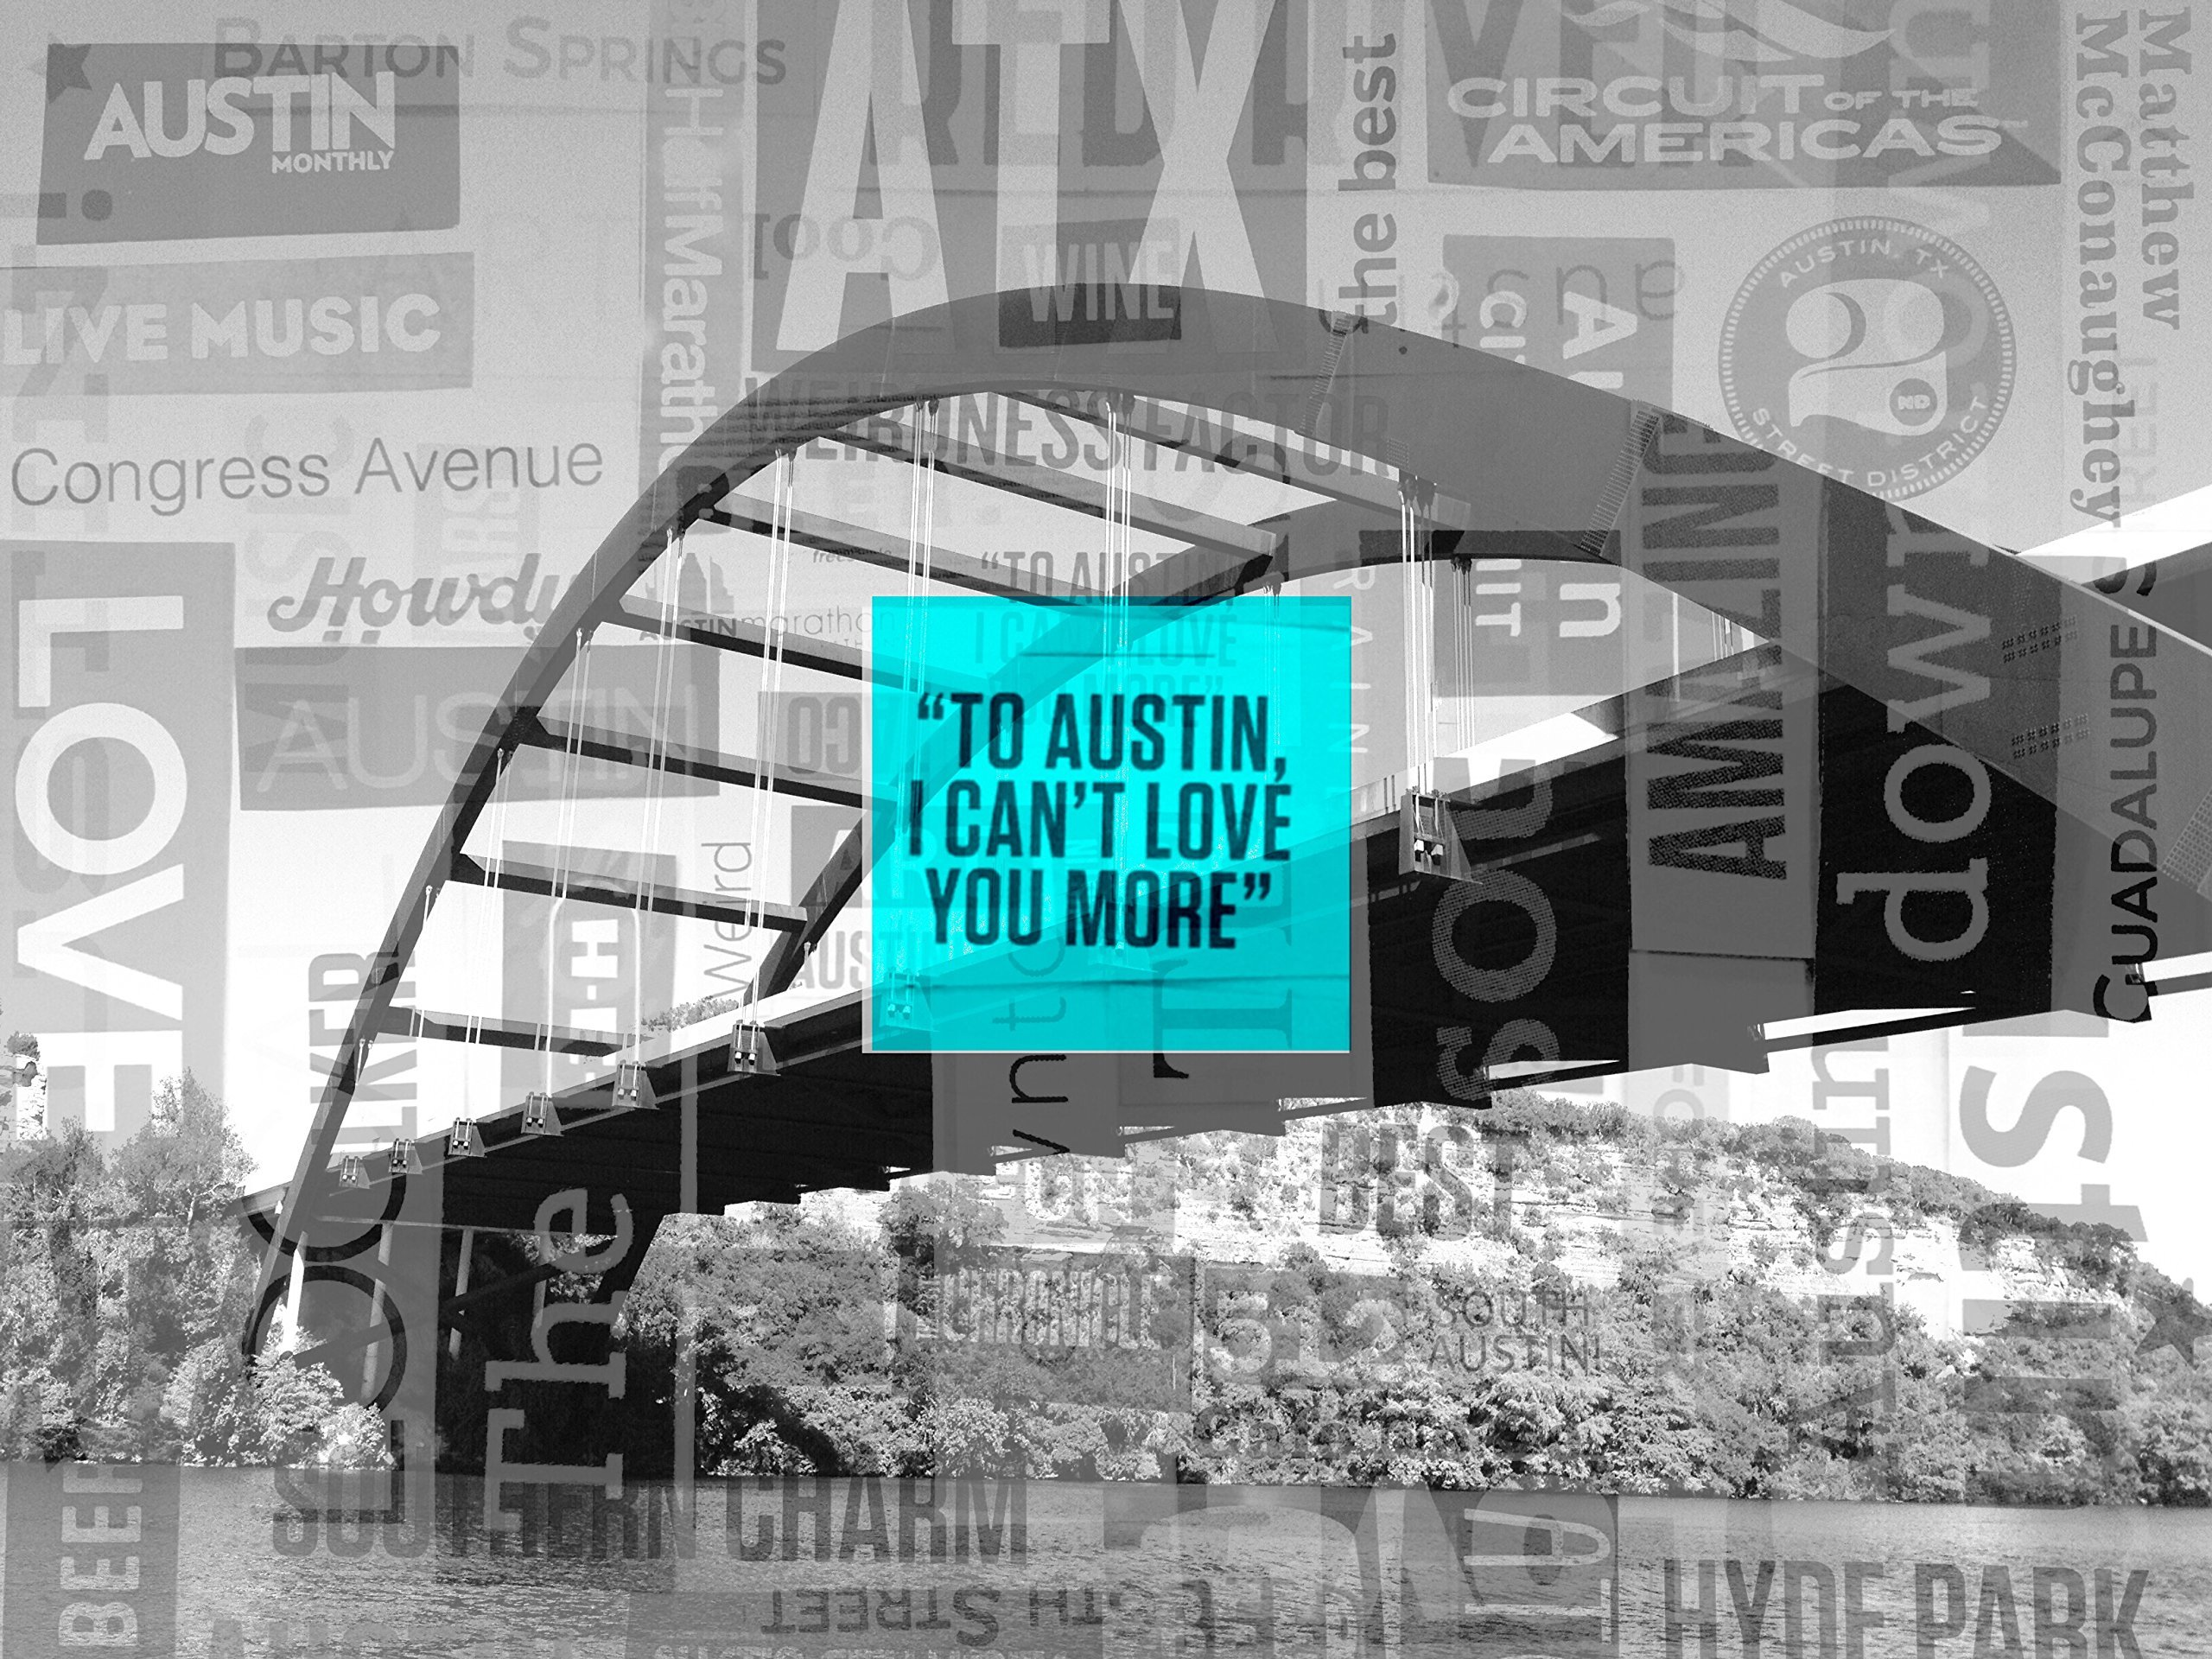 Photograph: Austin 360 Bridge + Word Collage + Can't love you more (8''x10'')